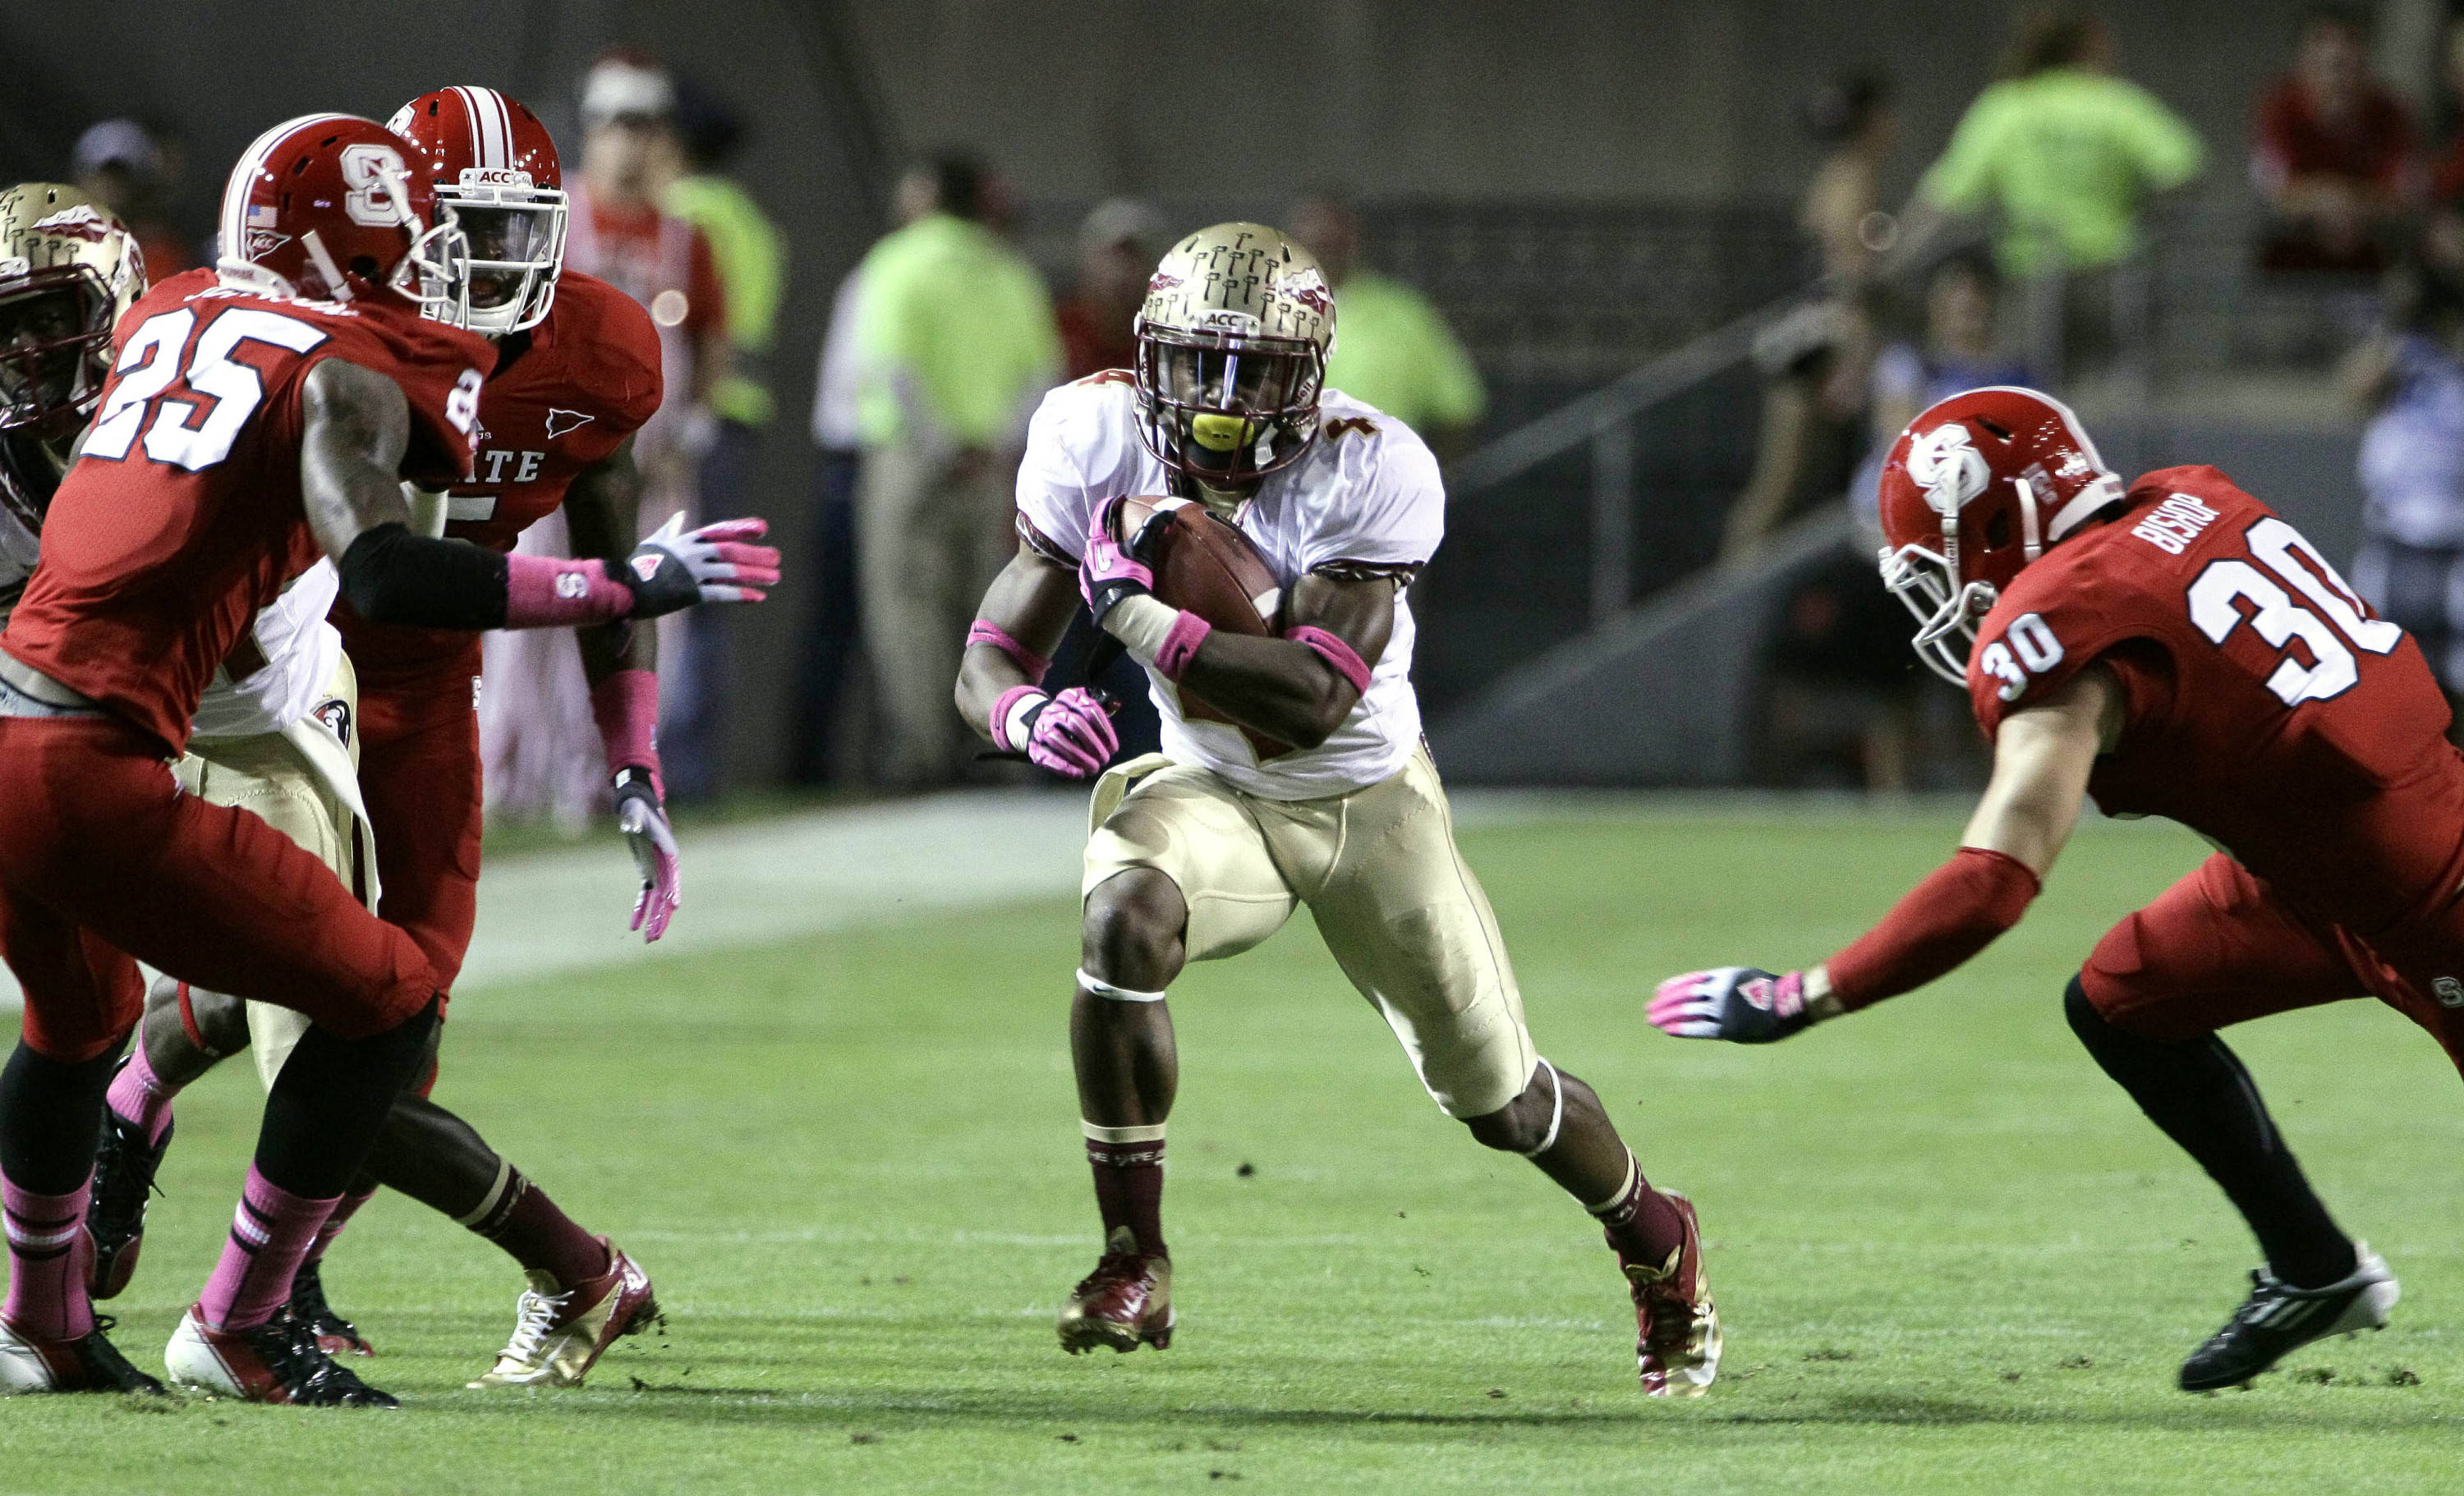 Florida State's Chris Thompson finds some running room as North Carolina State's Dontae Johnson (25) and Brandan Bishop (30) move in. (AP Photo/Gerry Broome)